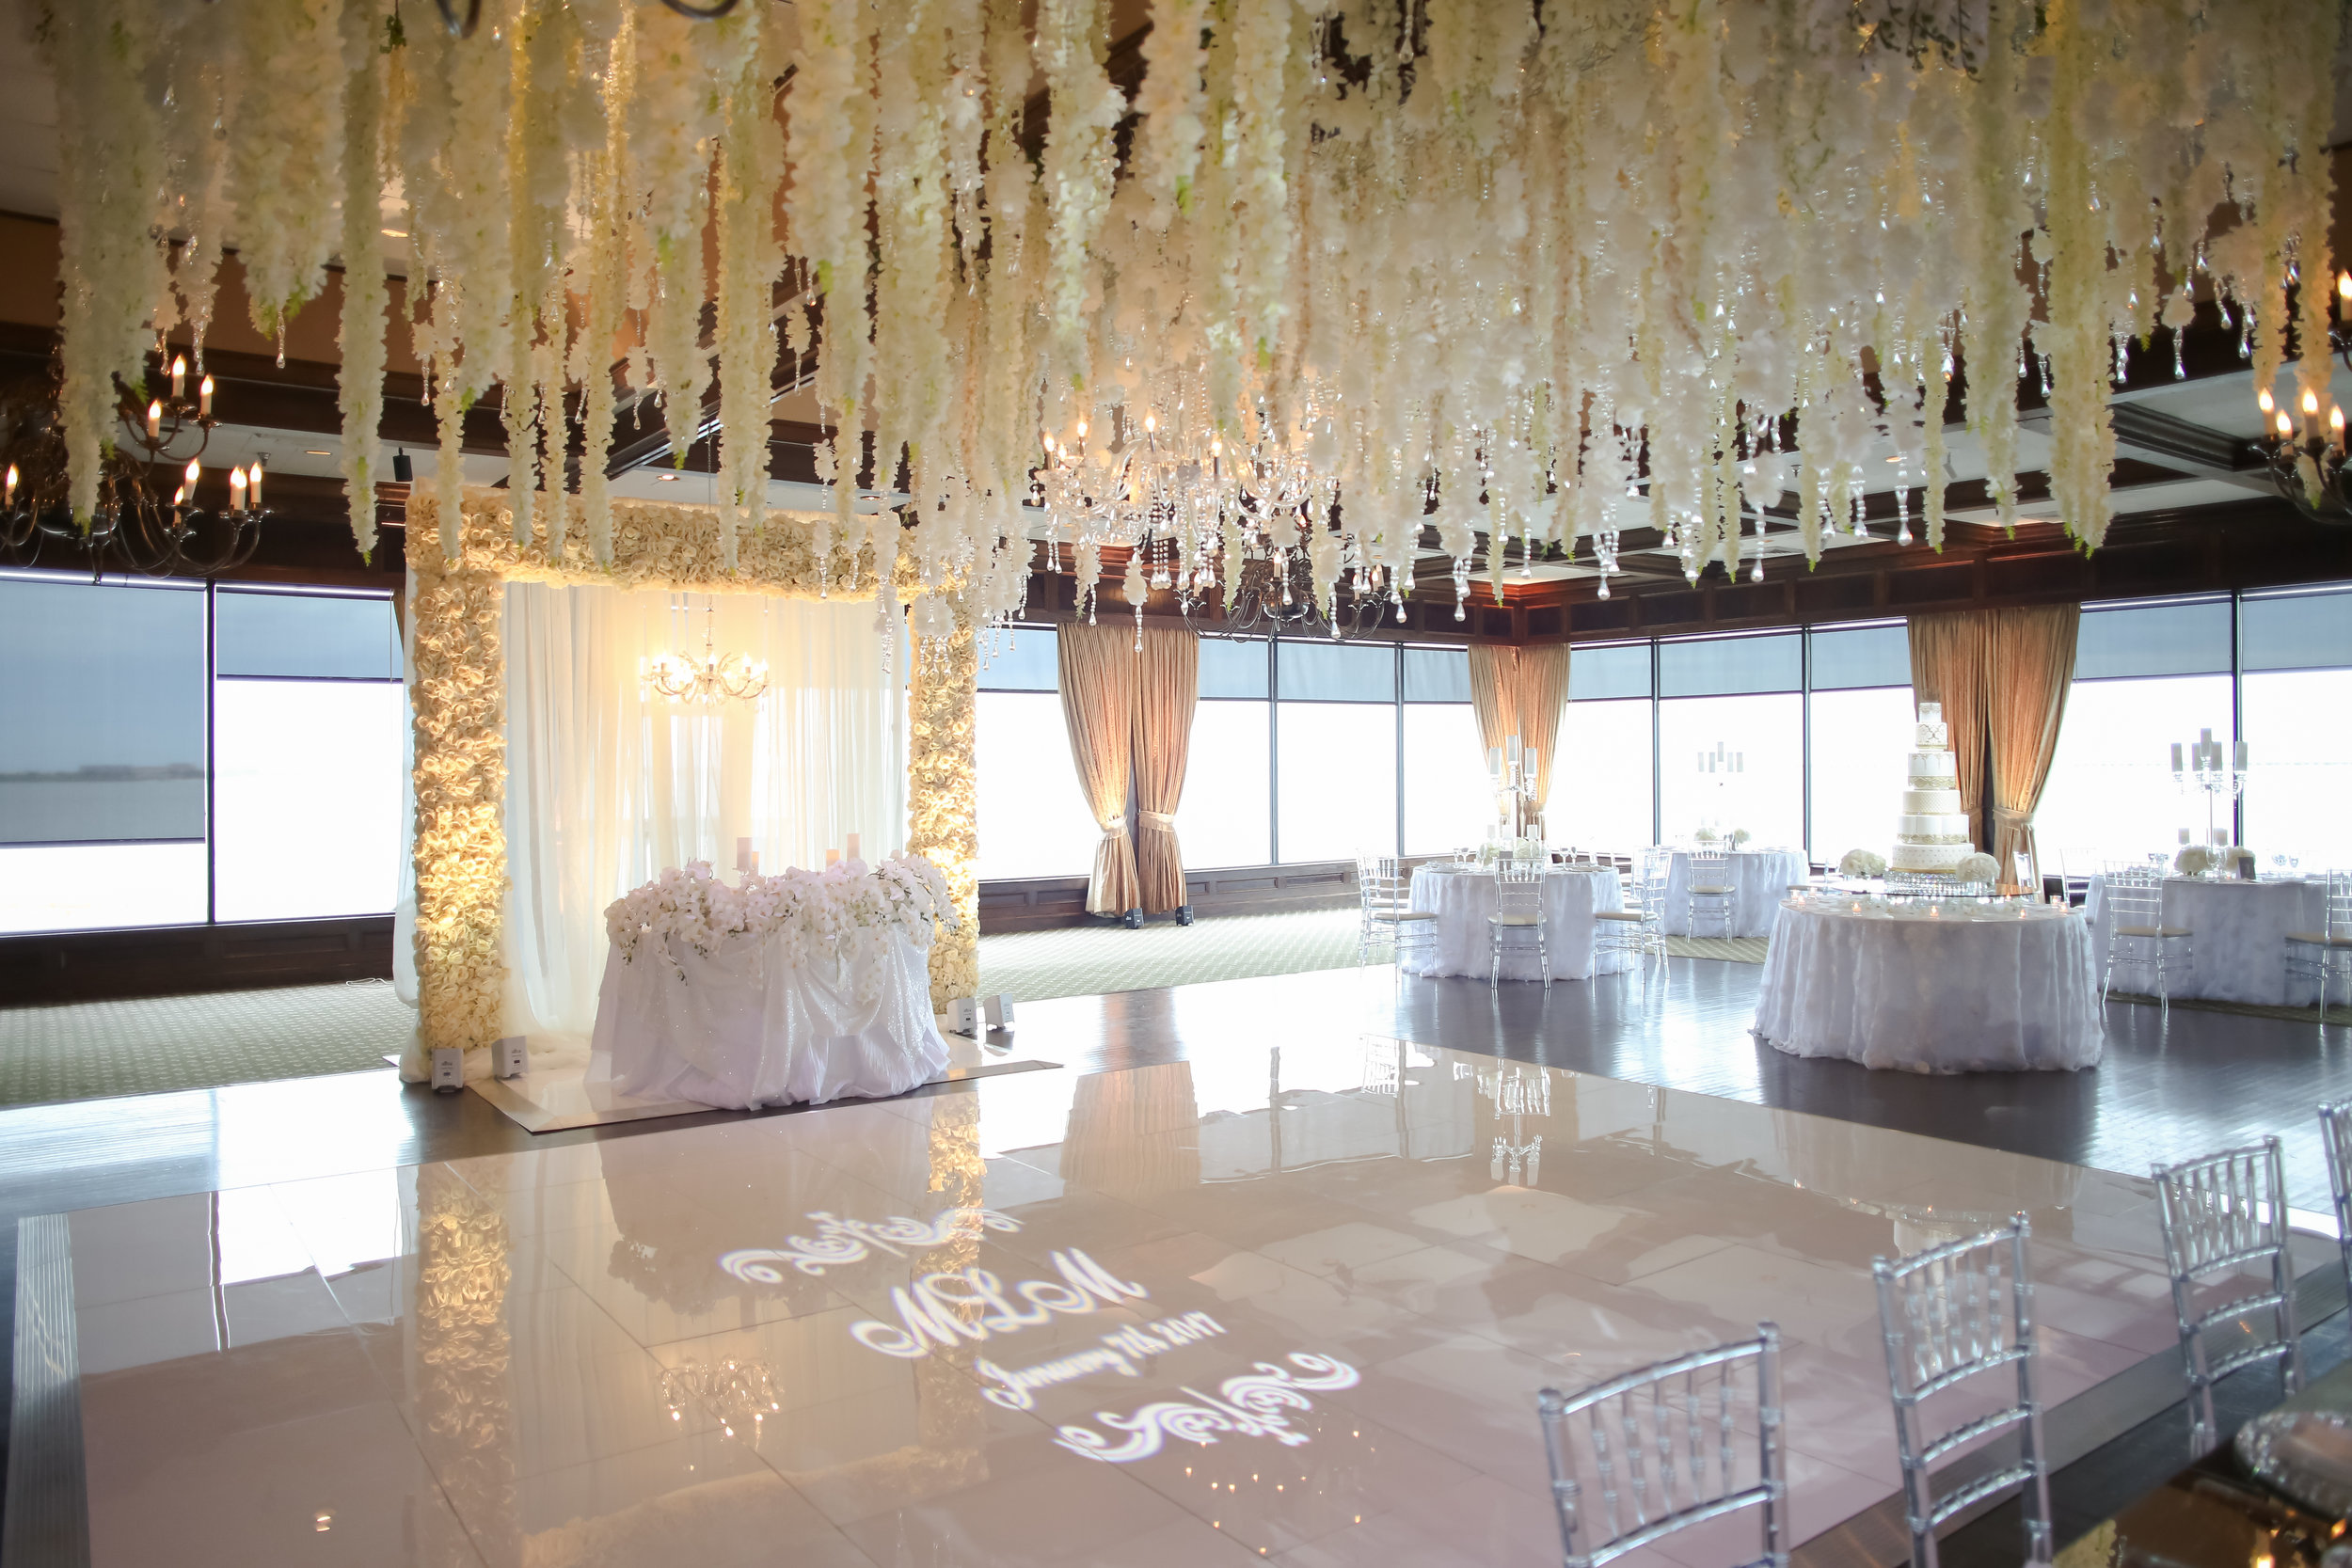 Inside the expansive ballroom, a floral ceiling installment was the jaw-dropping focal point above a white dance floor.